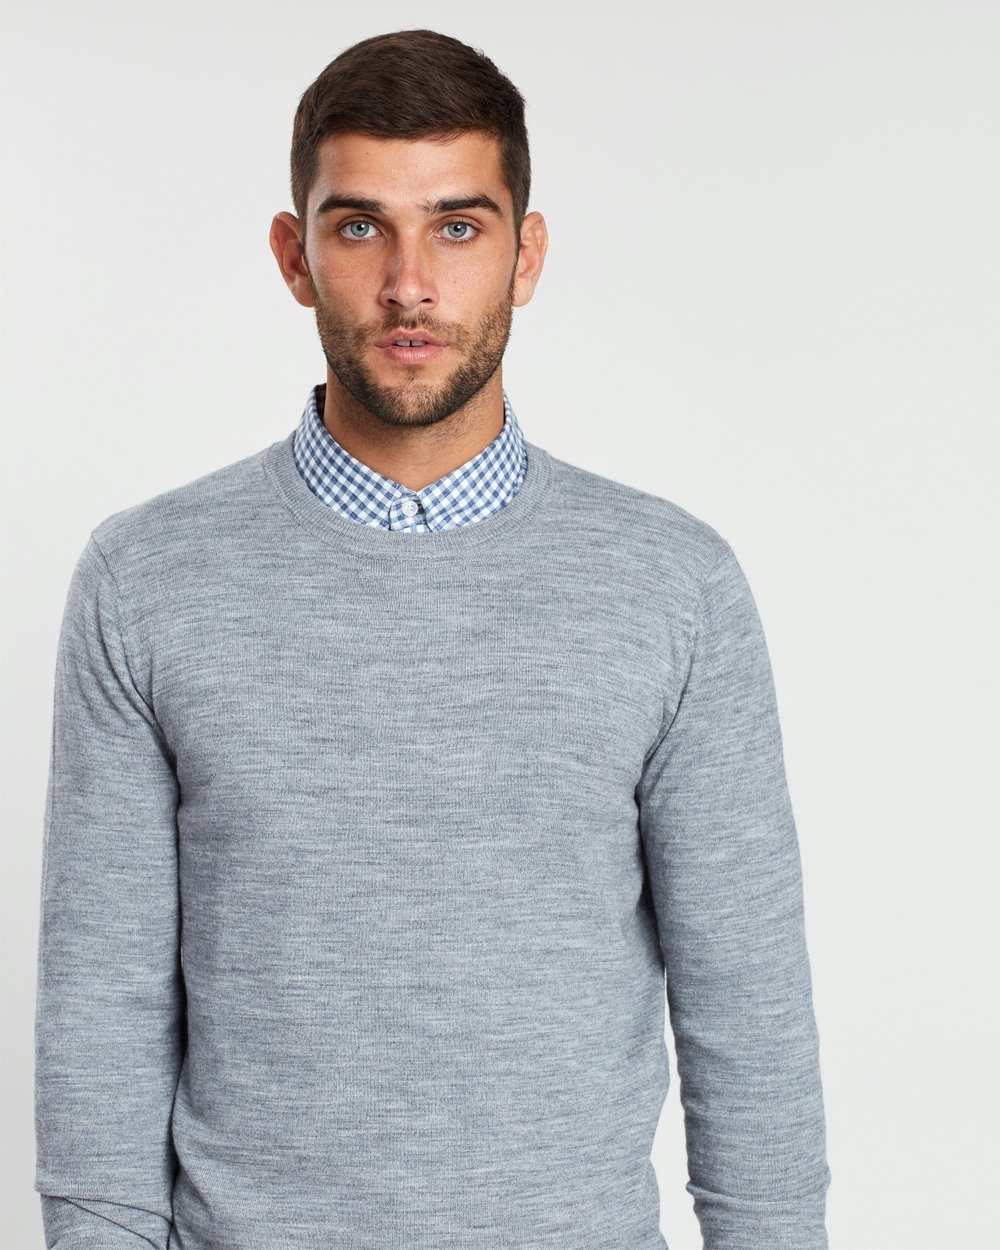 8d340dcd508a Academy Merino Crew by Academy Brand Online | THE ICONIC | Australia